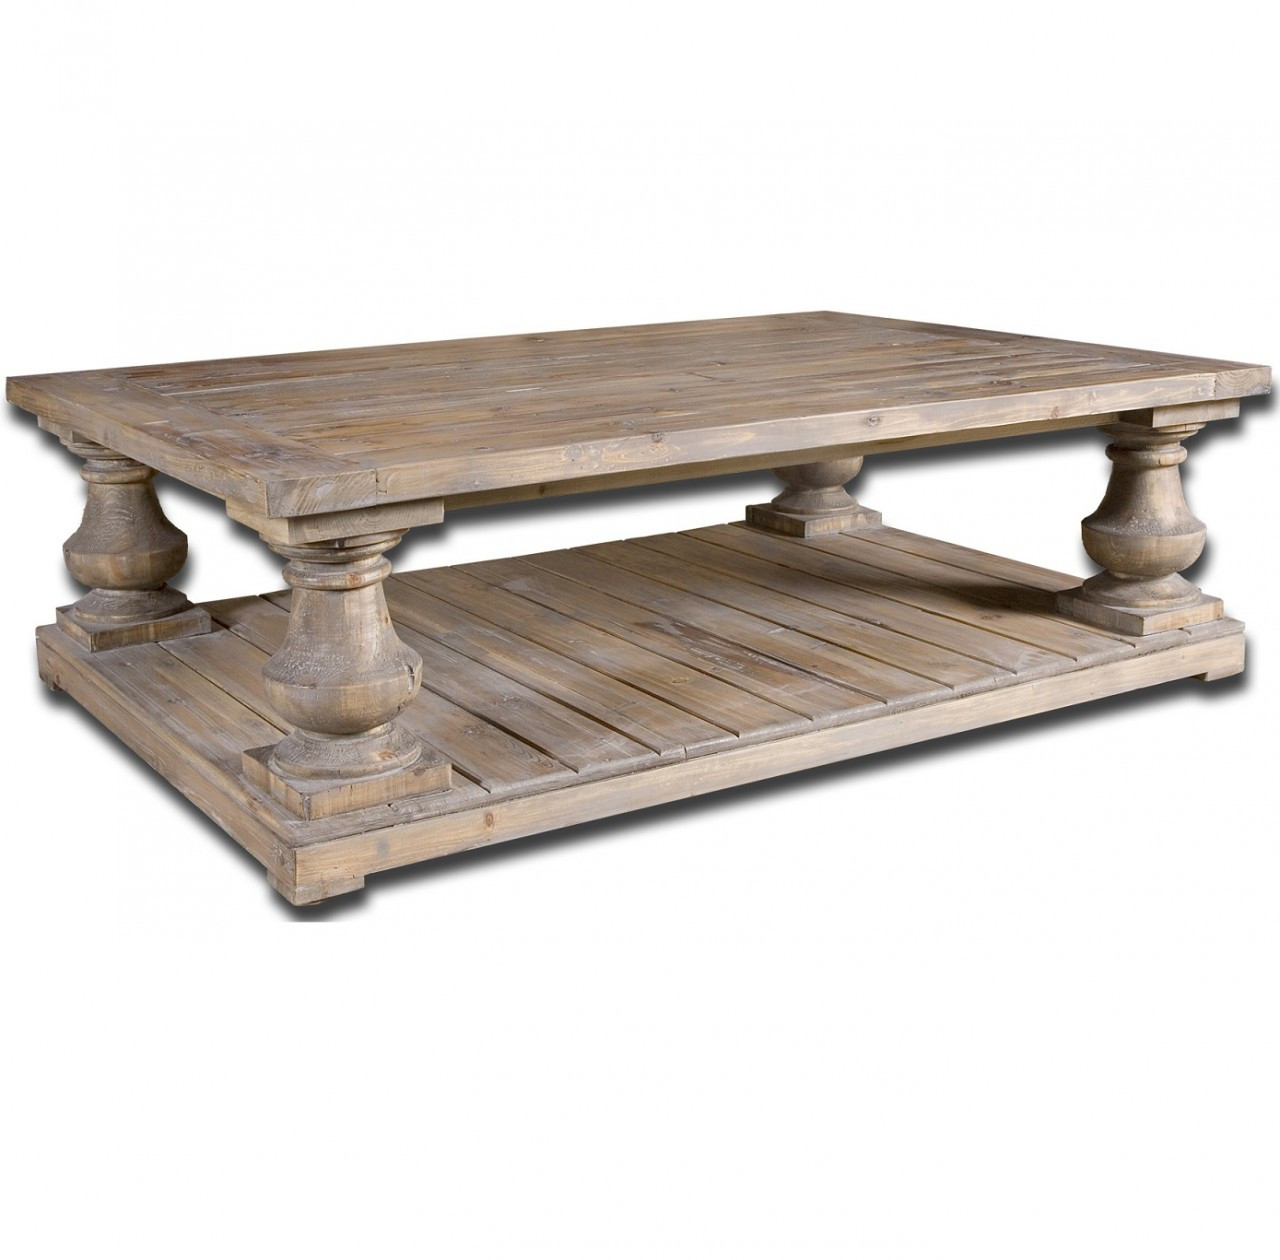 Salvaged Wood Rustic Coffee Table 60 Quot Zin Home